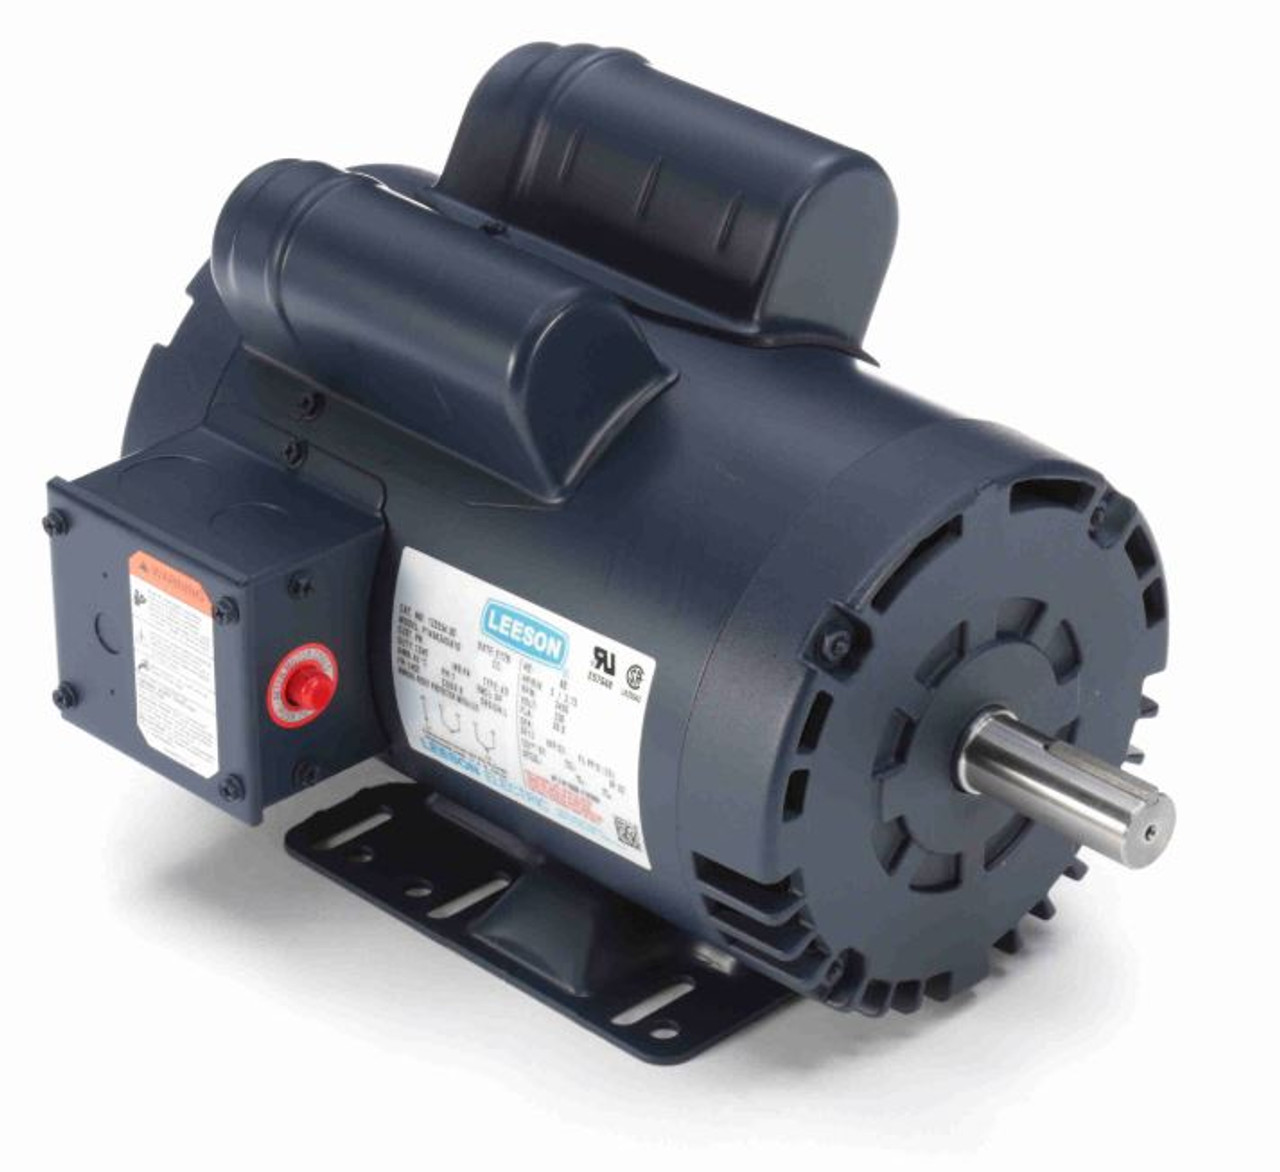 5 hp 3450 RPM 145T 230V Air Compressor Motor Leeson # 120554 campbell hausfeld air compressor wiring diagram Electric Motor Warehouse